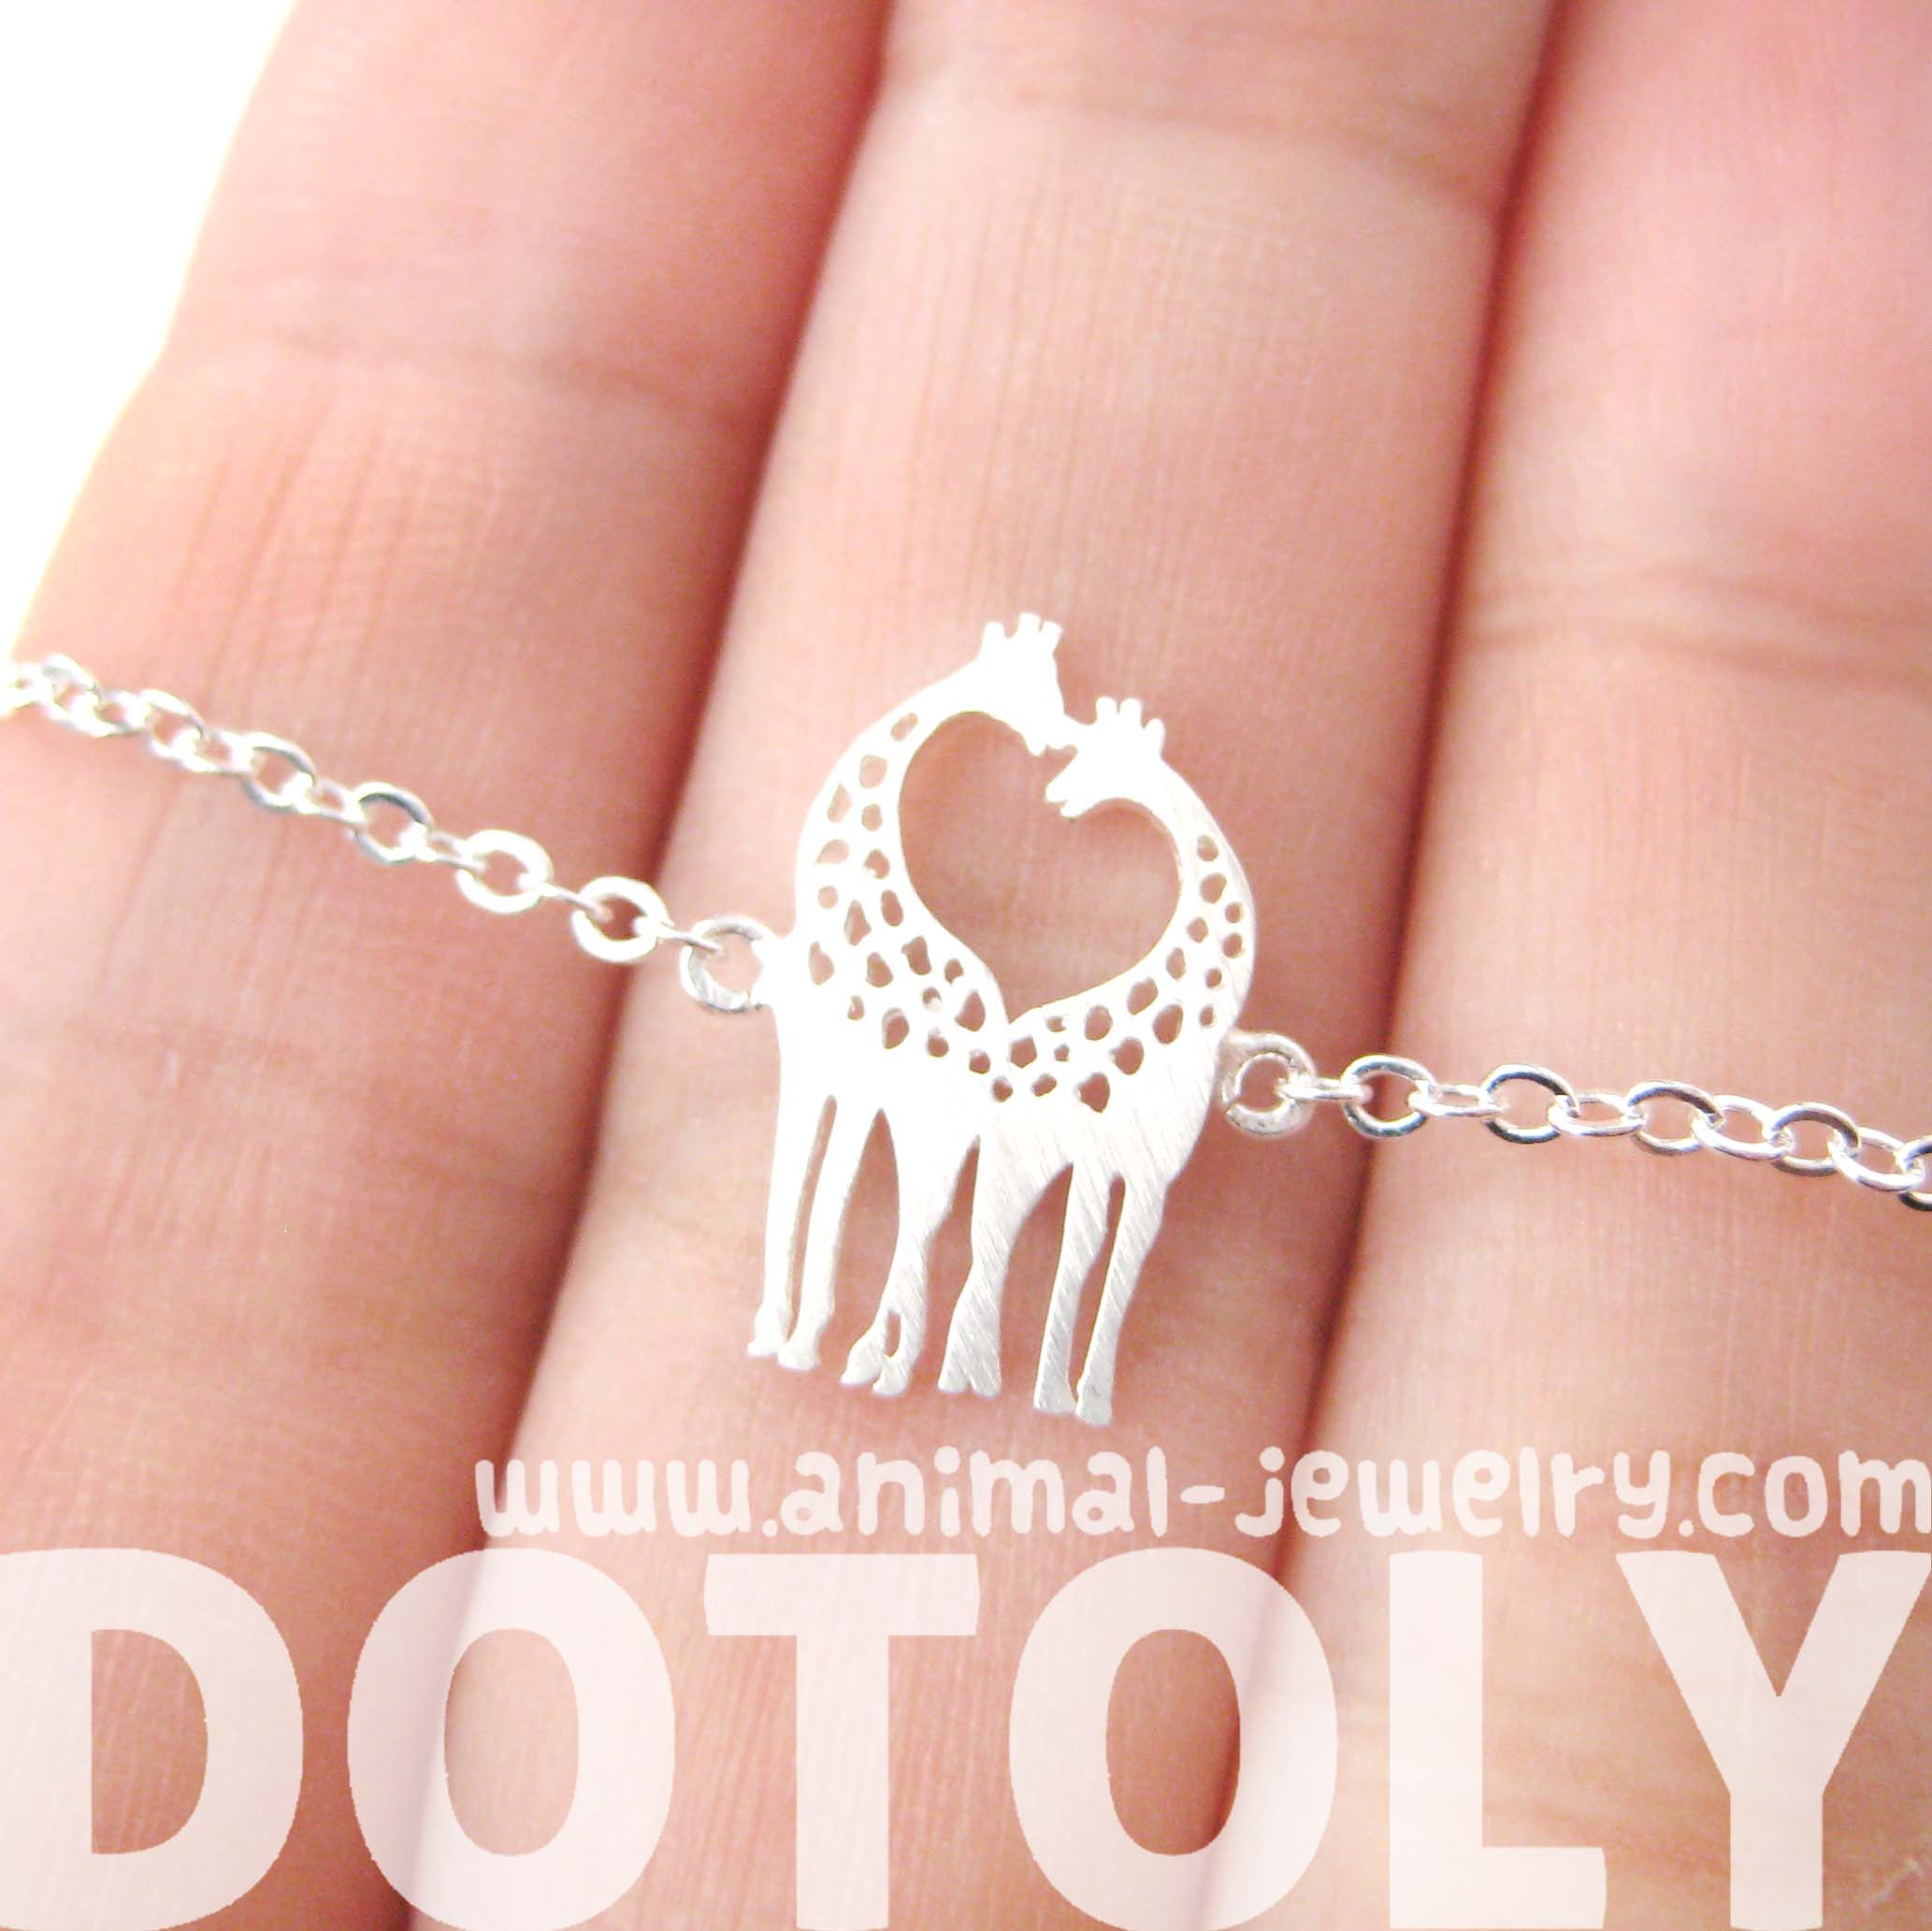 necklaces from giraffe jewellery pendant fishpond original au online com c buy q